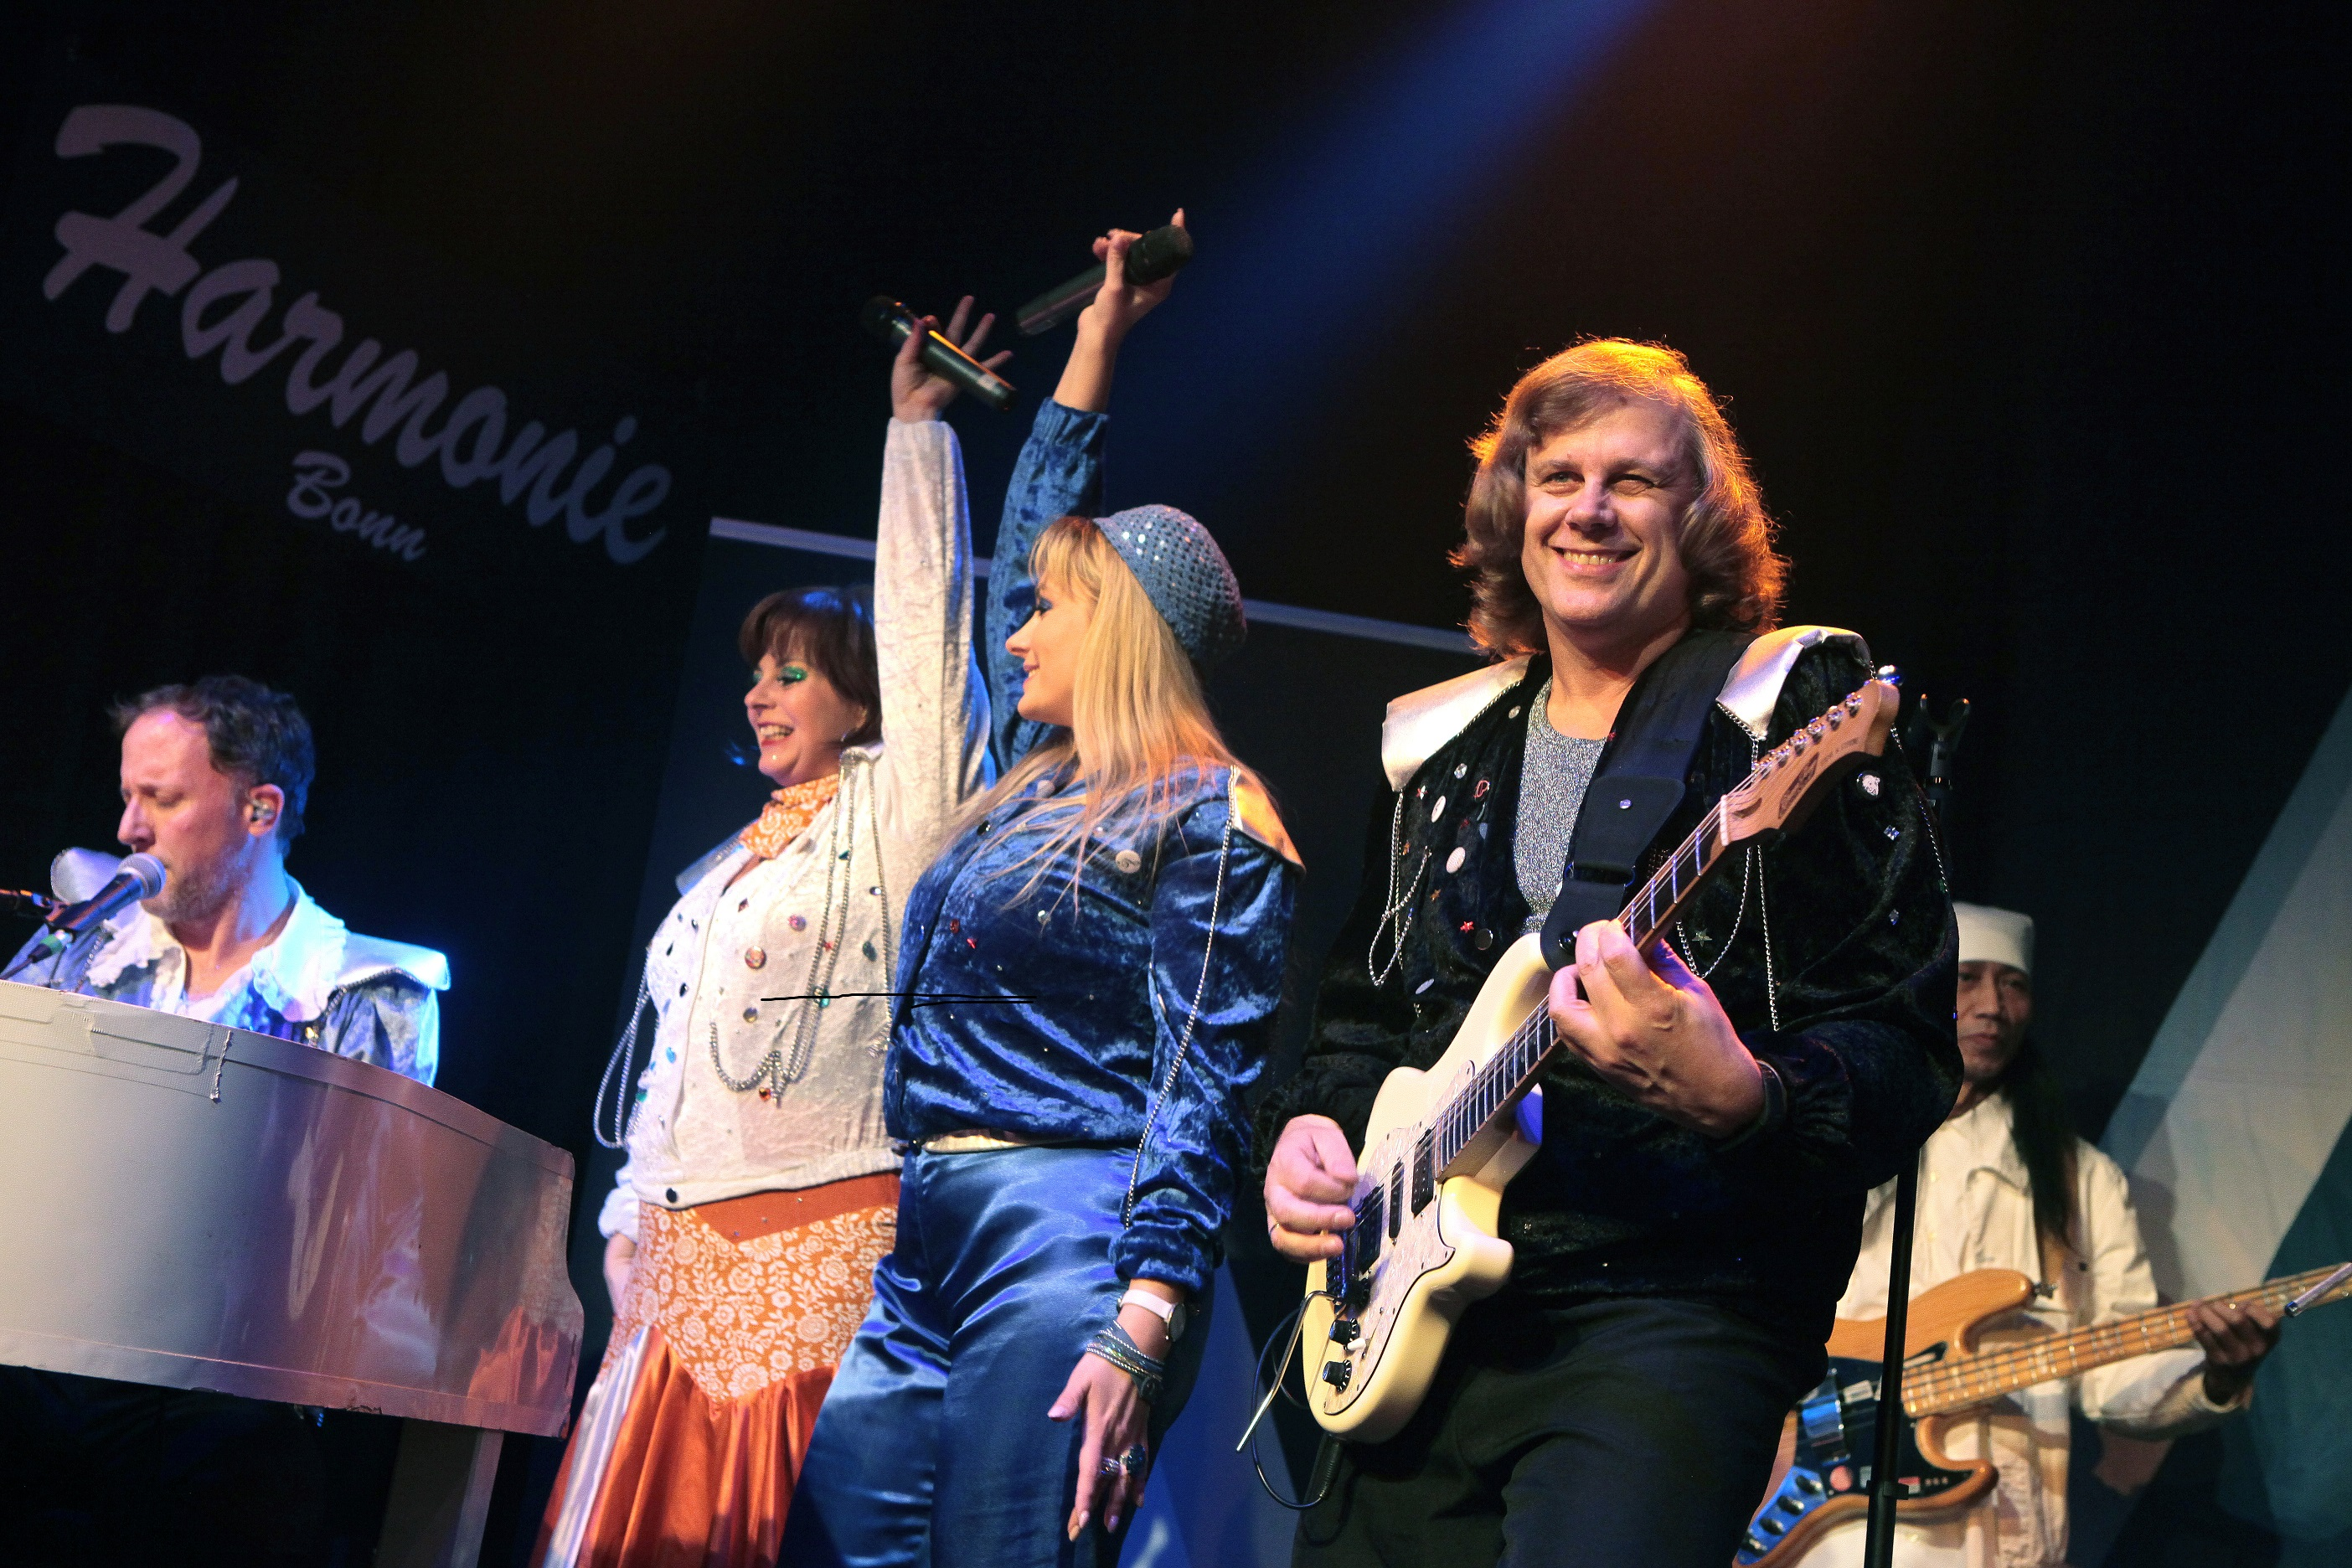 Band Abba Review © Steve Stevens, Bonn